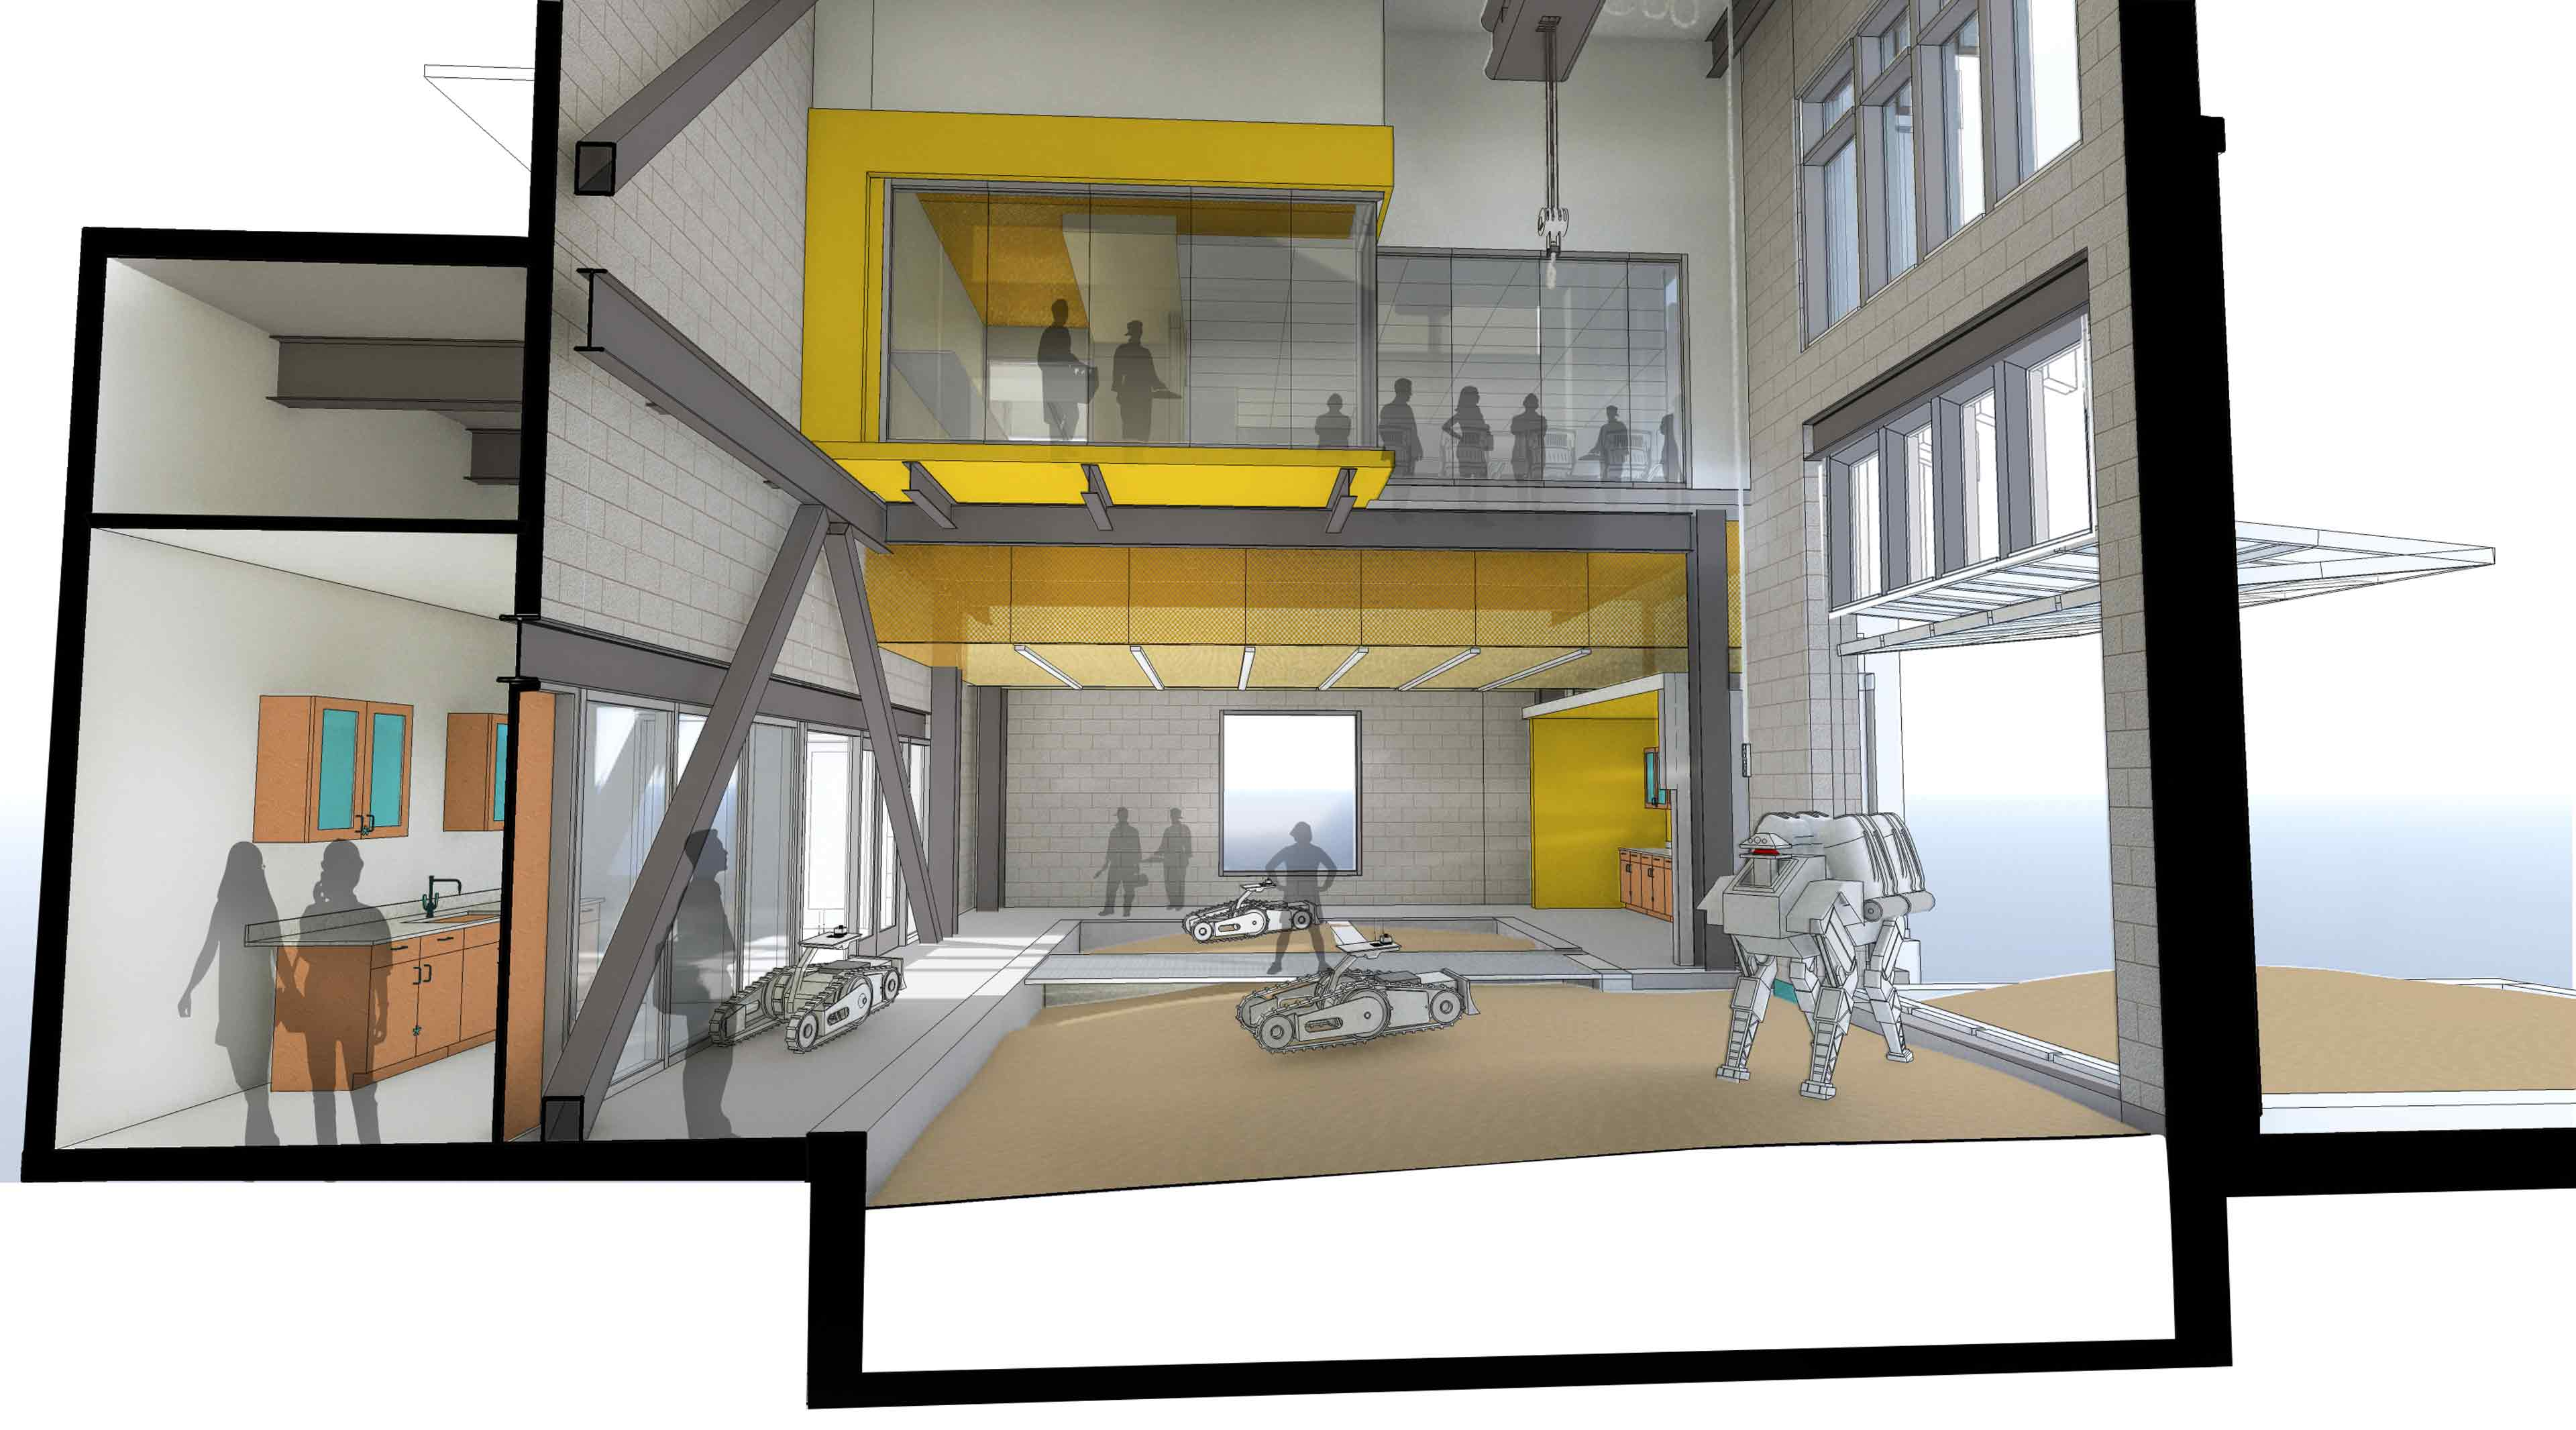 Center for Autonomous Mining and Robotics lab drawing of a new interior space.